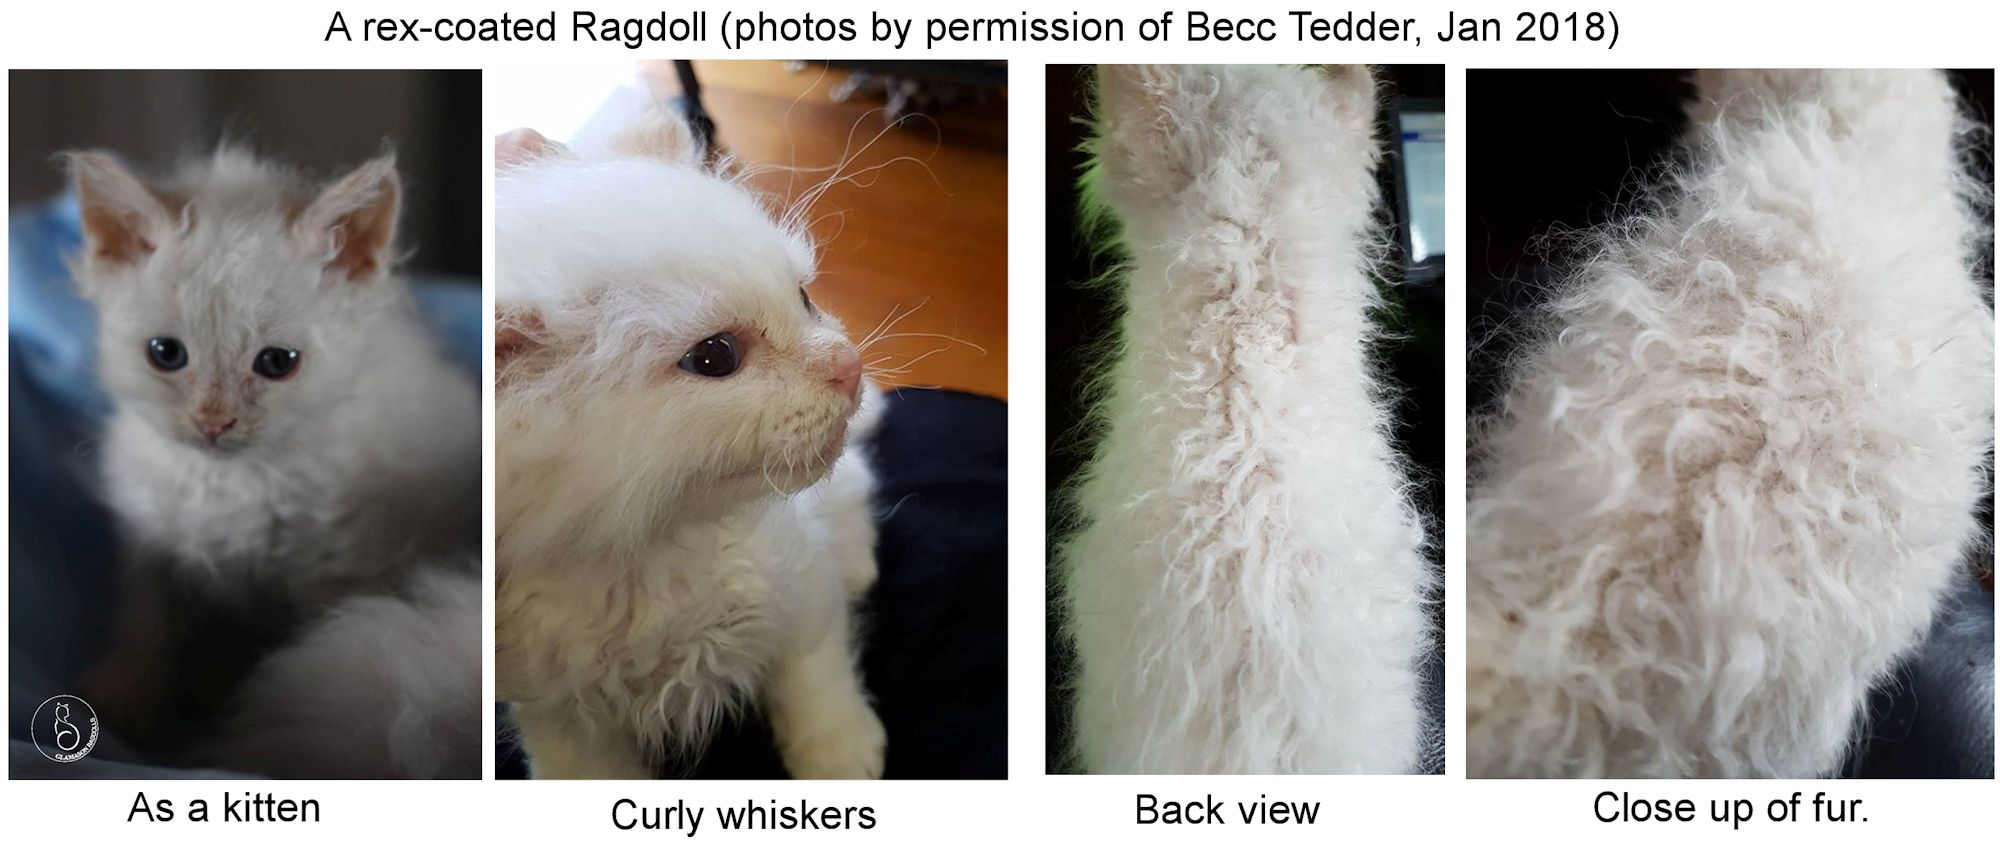 CURLY-COATED CATS